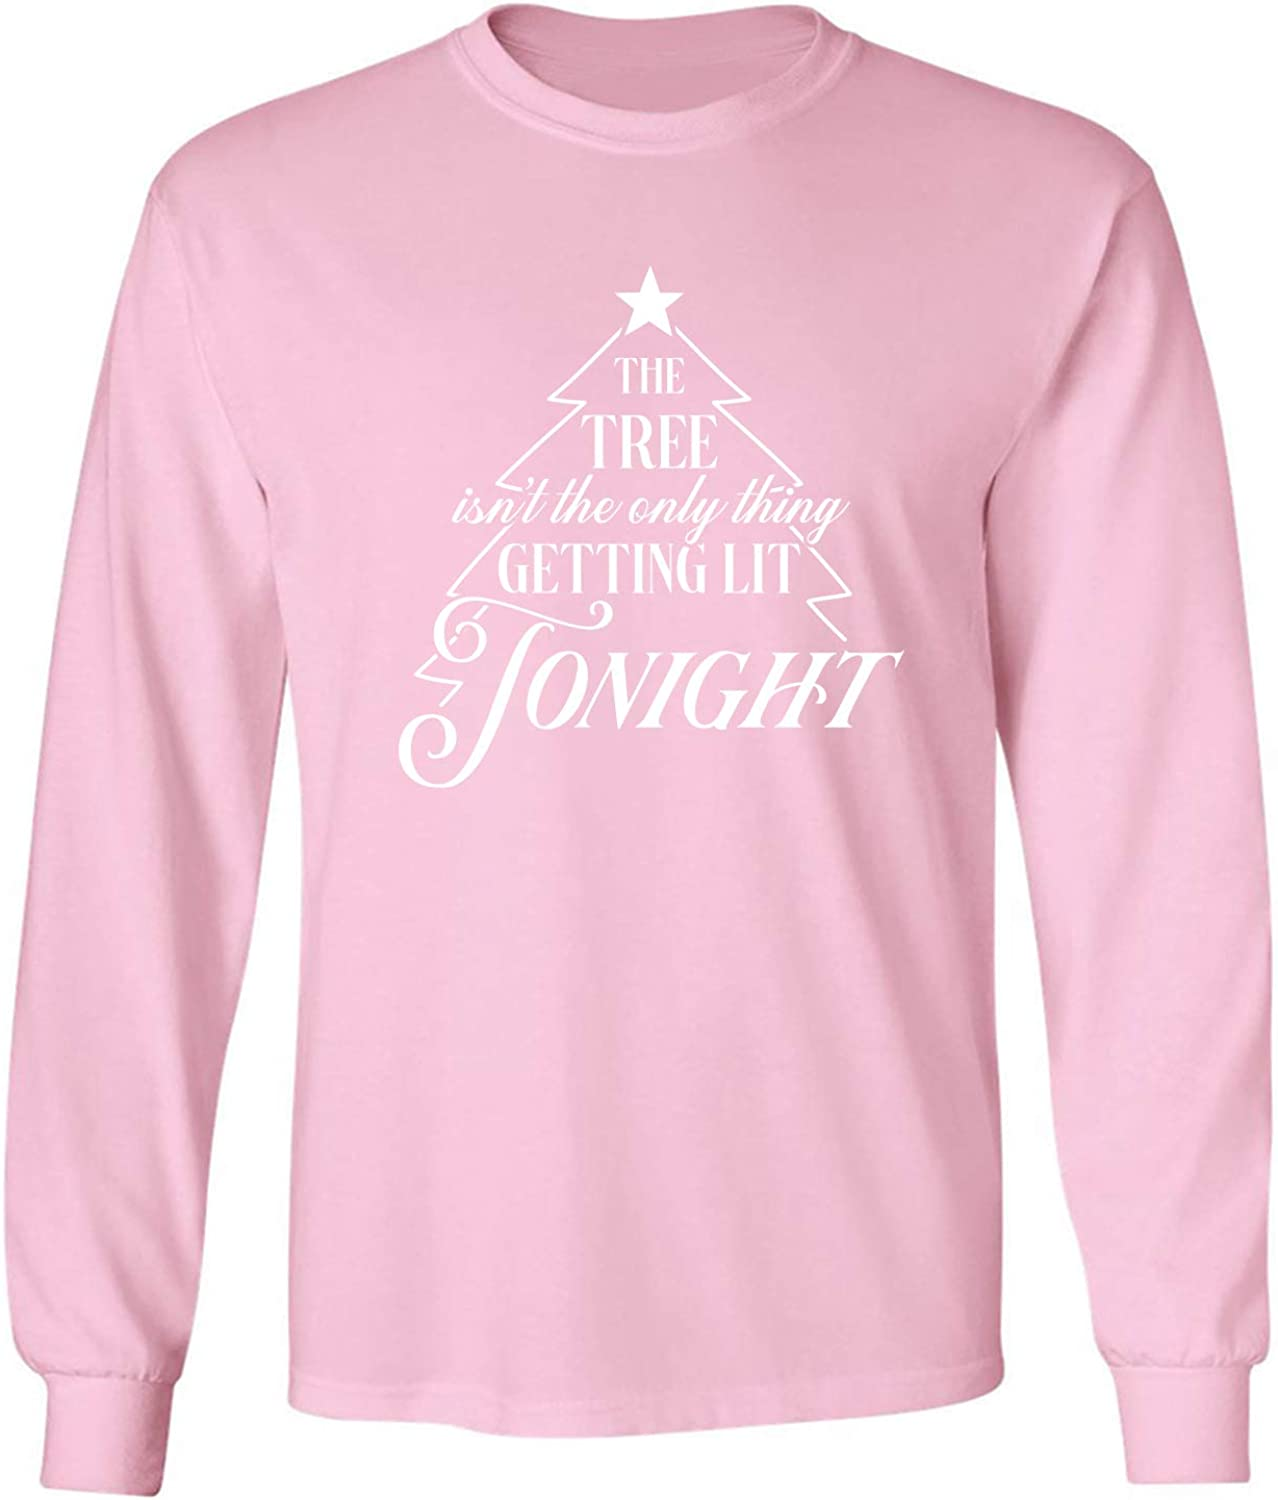 The Tree.Getting Lit Tonight Adult Long Sleeve T-Shirt in Pink - XXXXX-Large